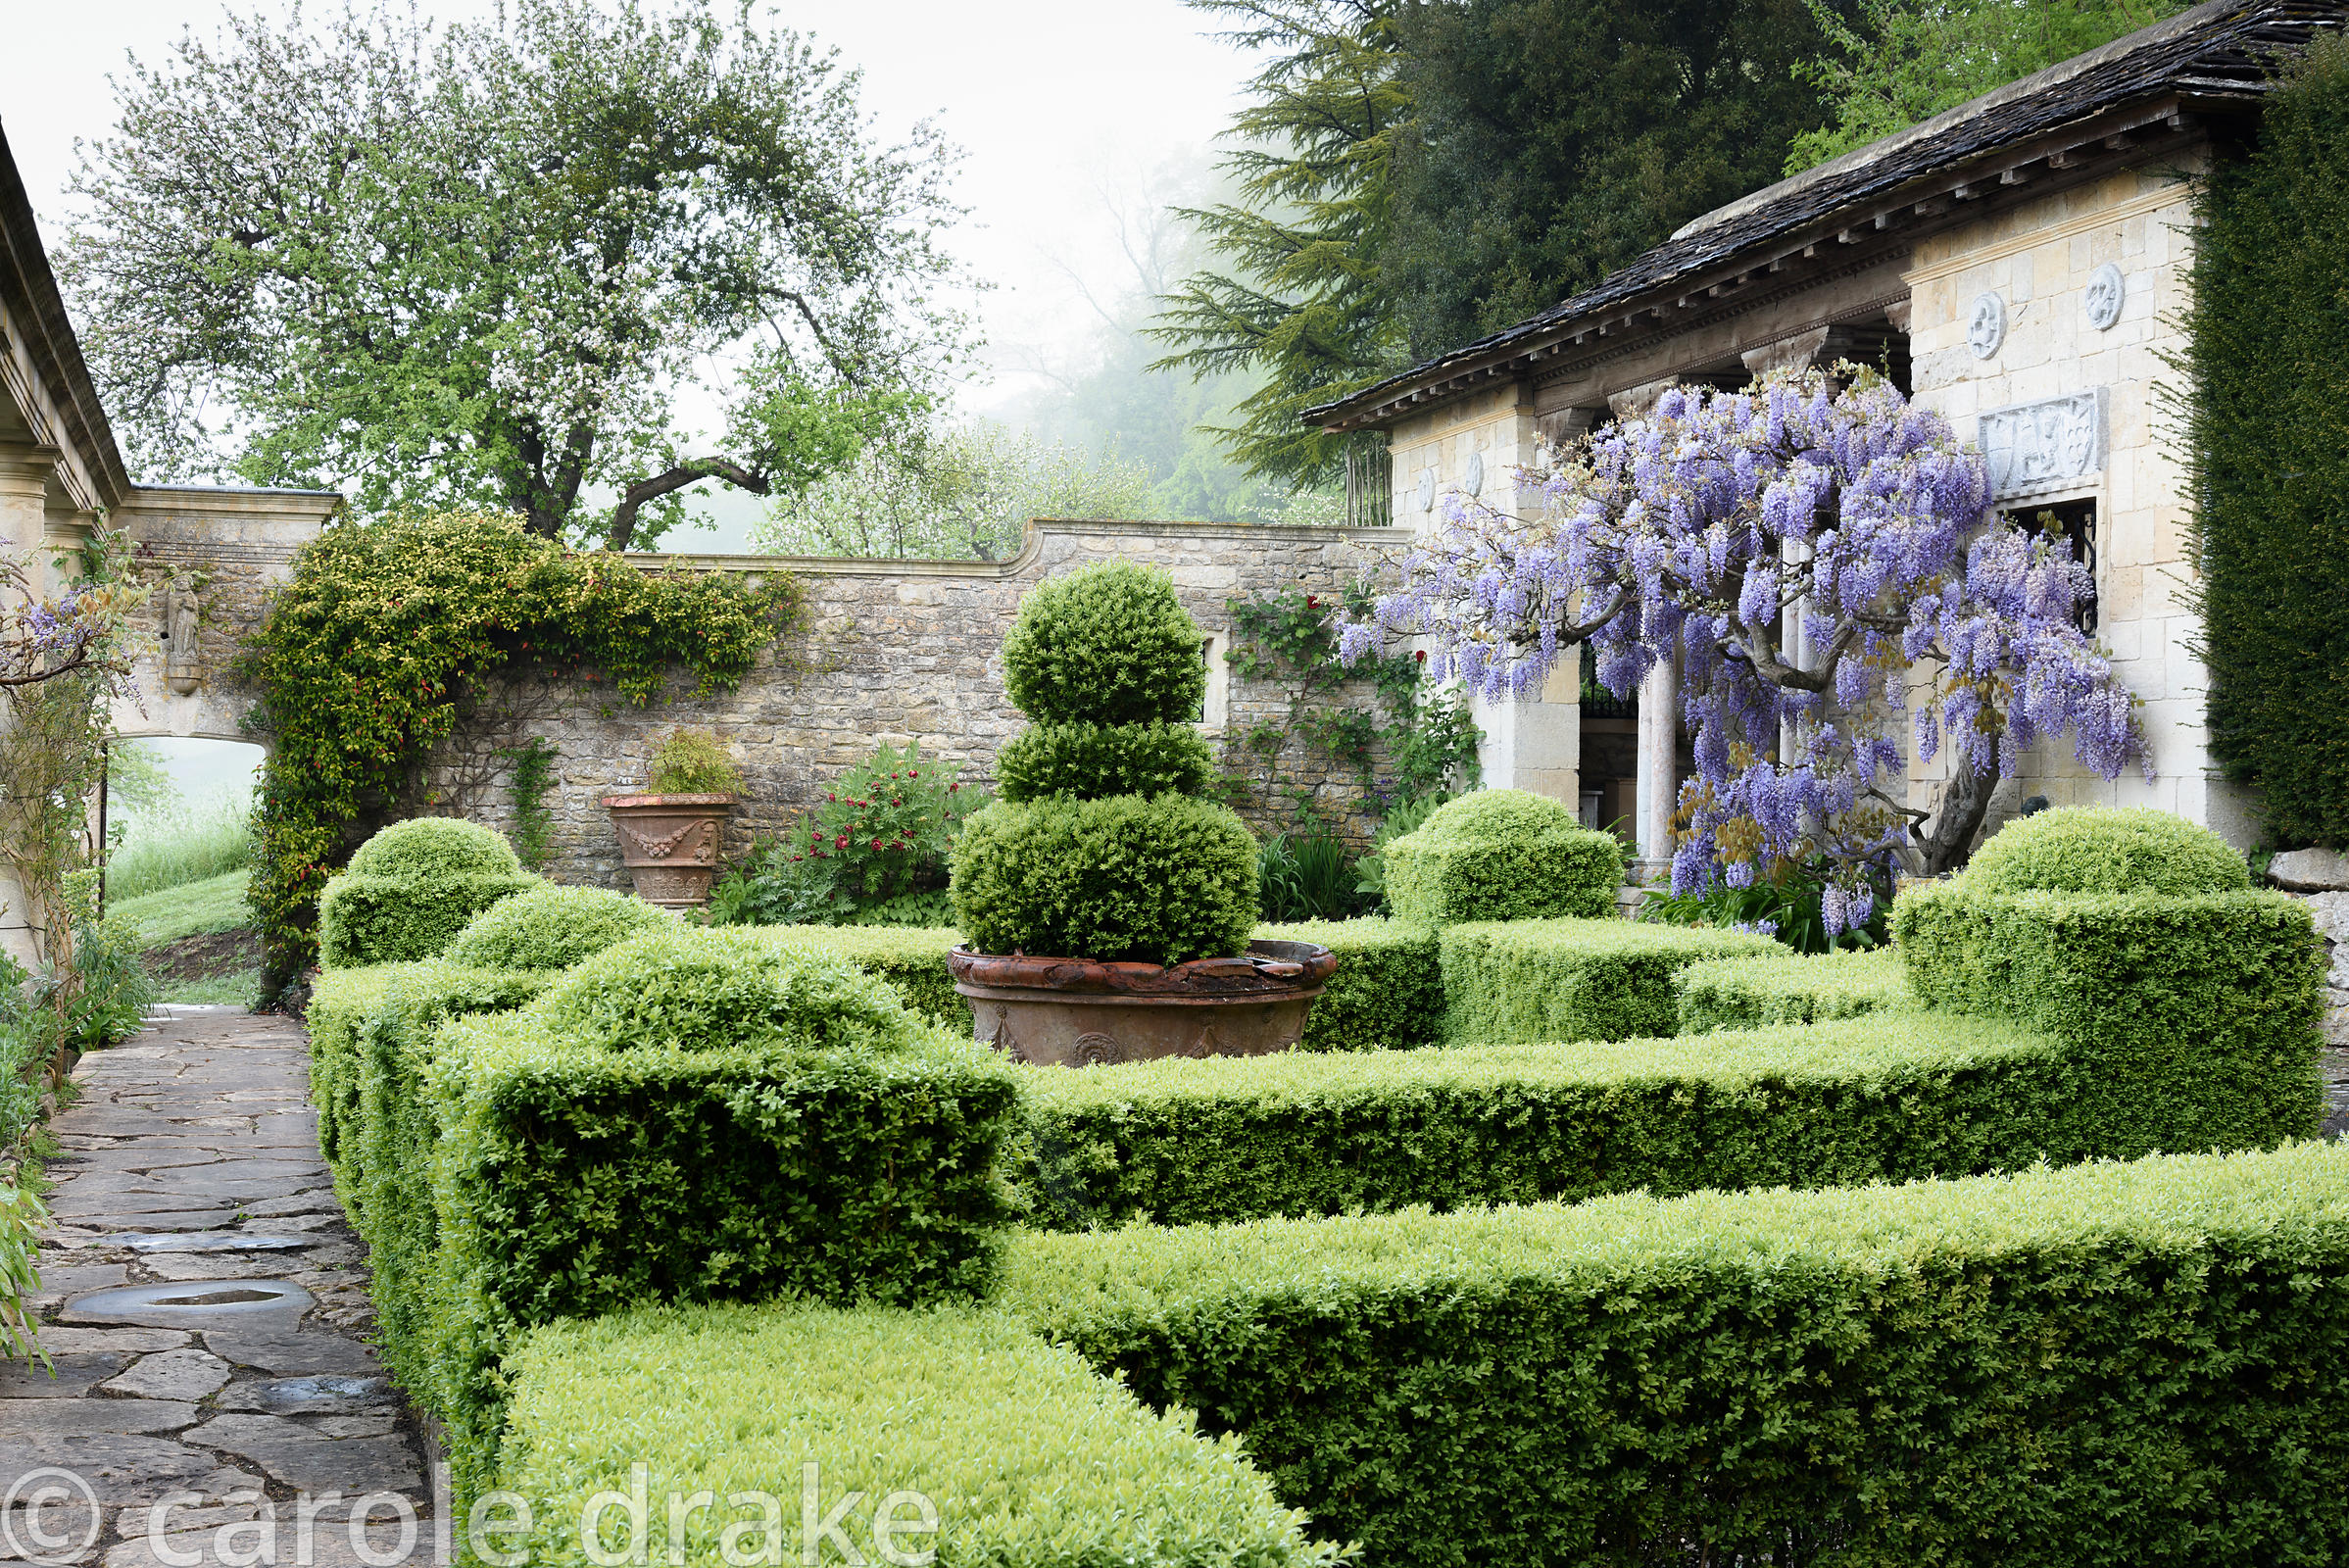 The Casita with wisteria, ,clipped box parterre and stonework at Iford Manor, Bradford-on-Avon, Wilts in May